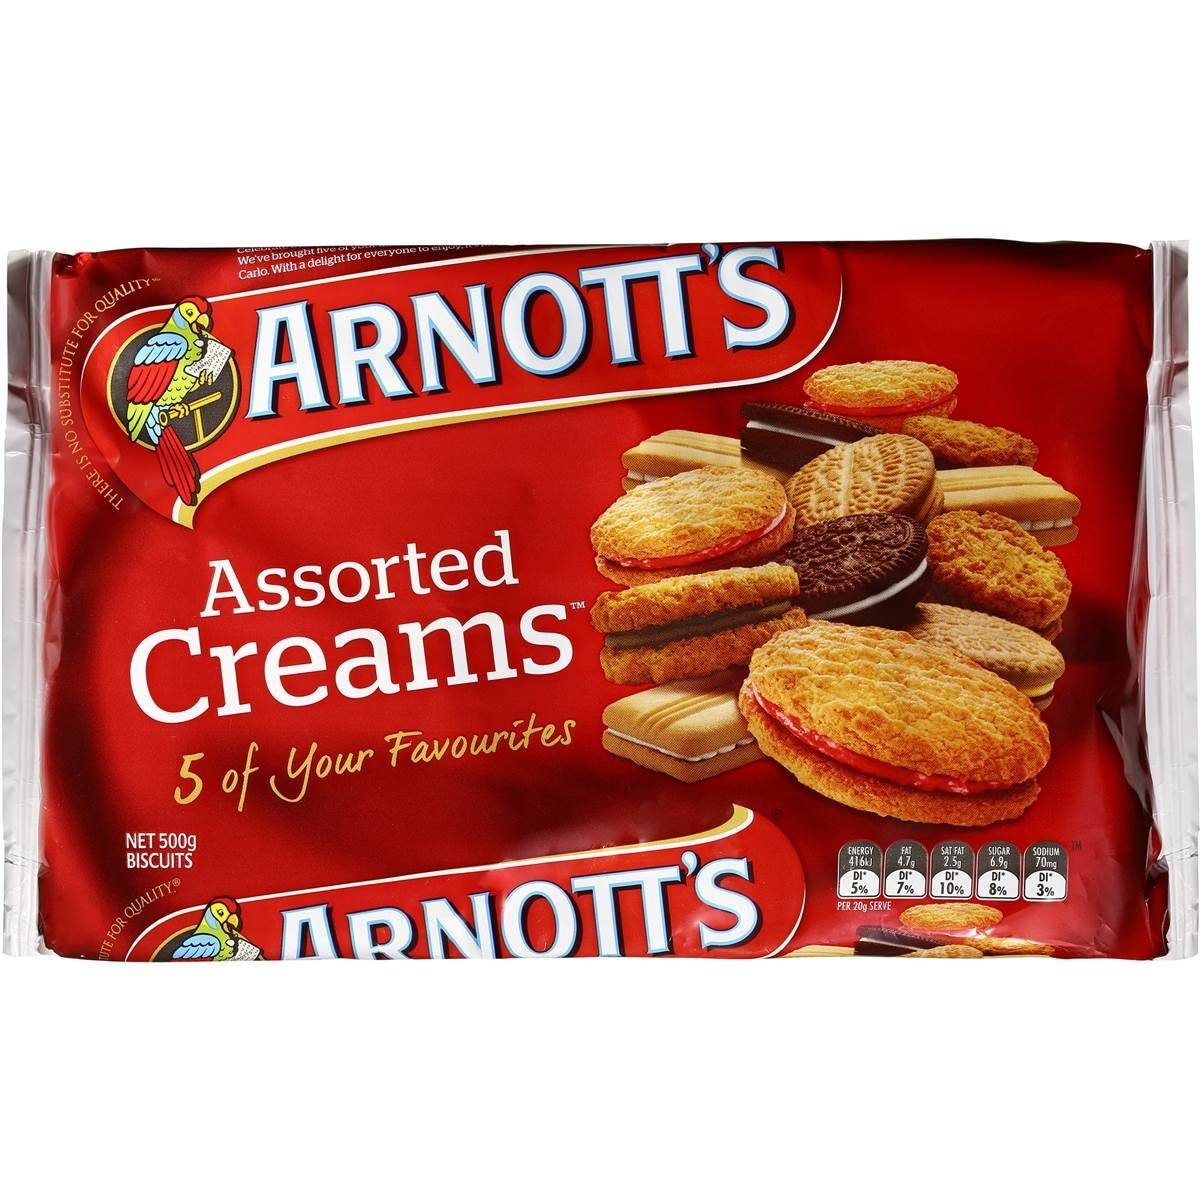 Arnotts Assorted Cream Biscuits 500g